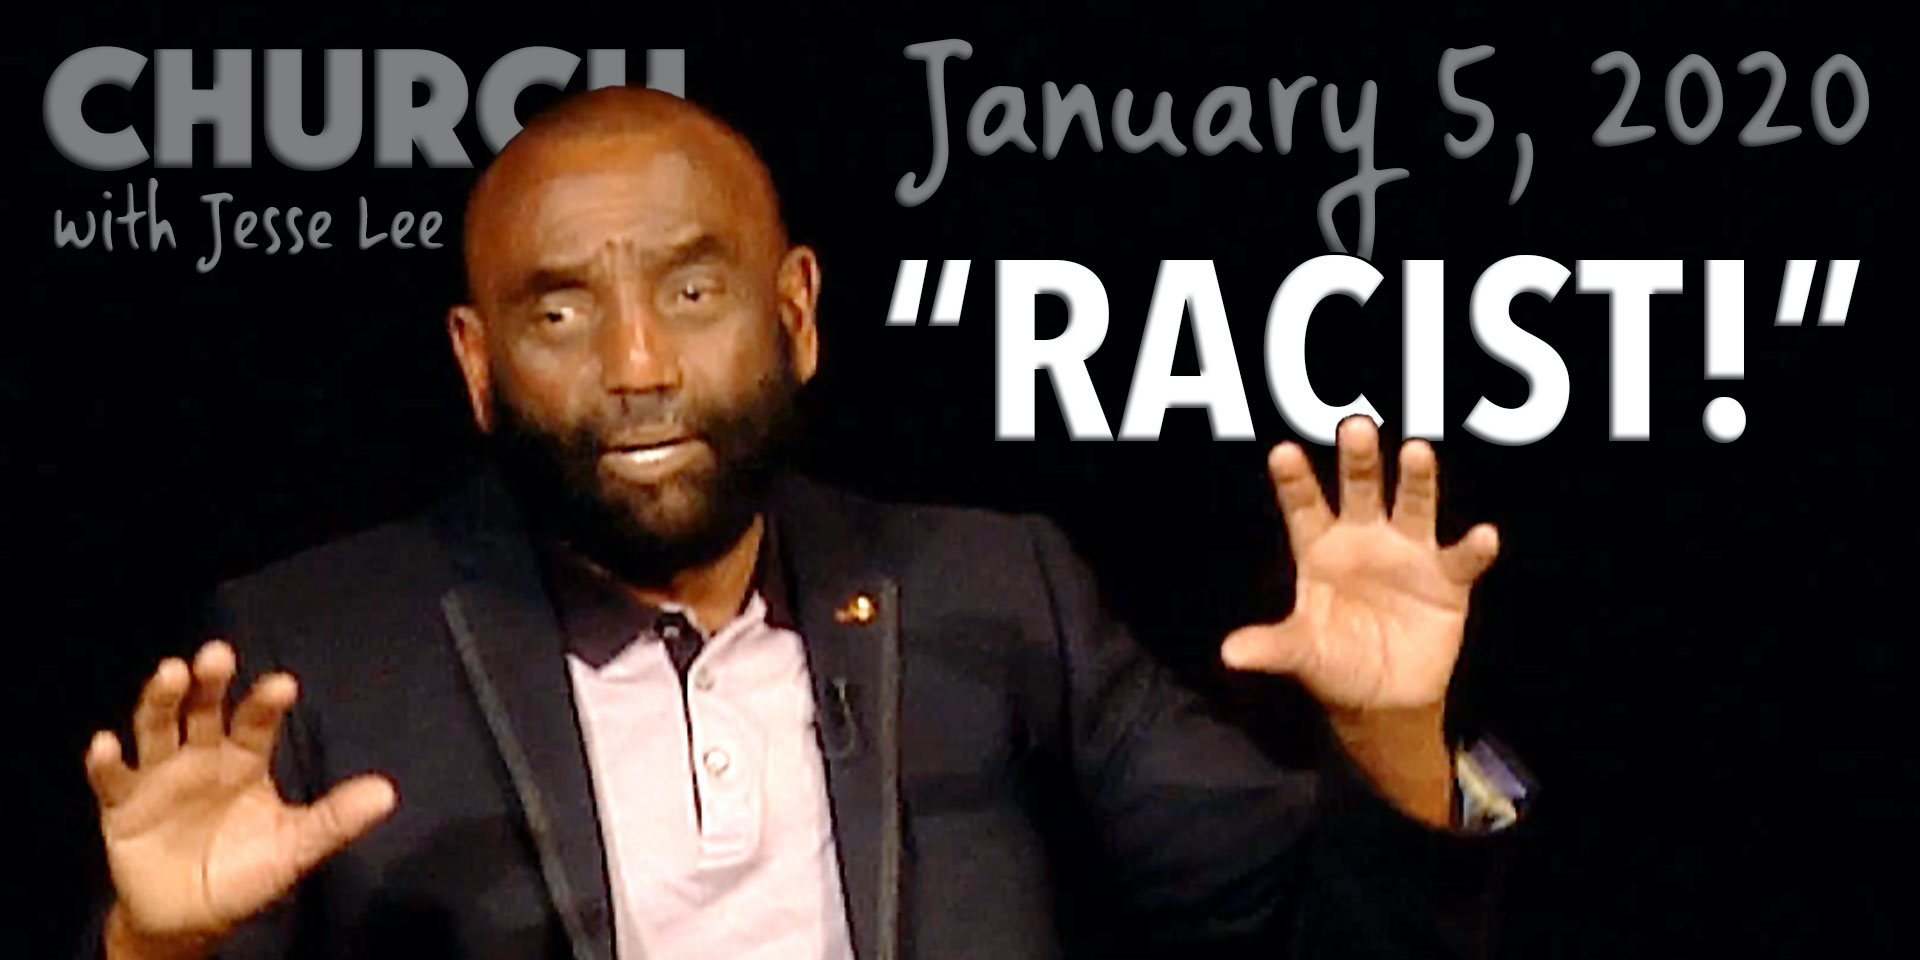 """Racist!"" (Church, Jan 5, 2020)"